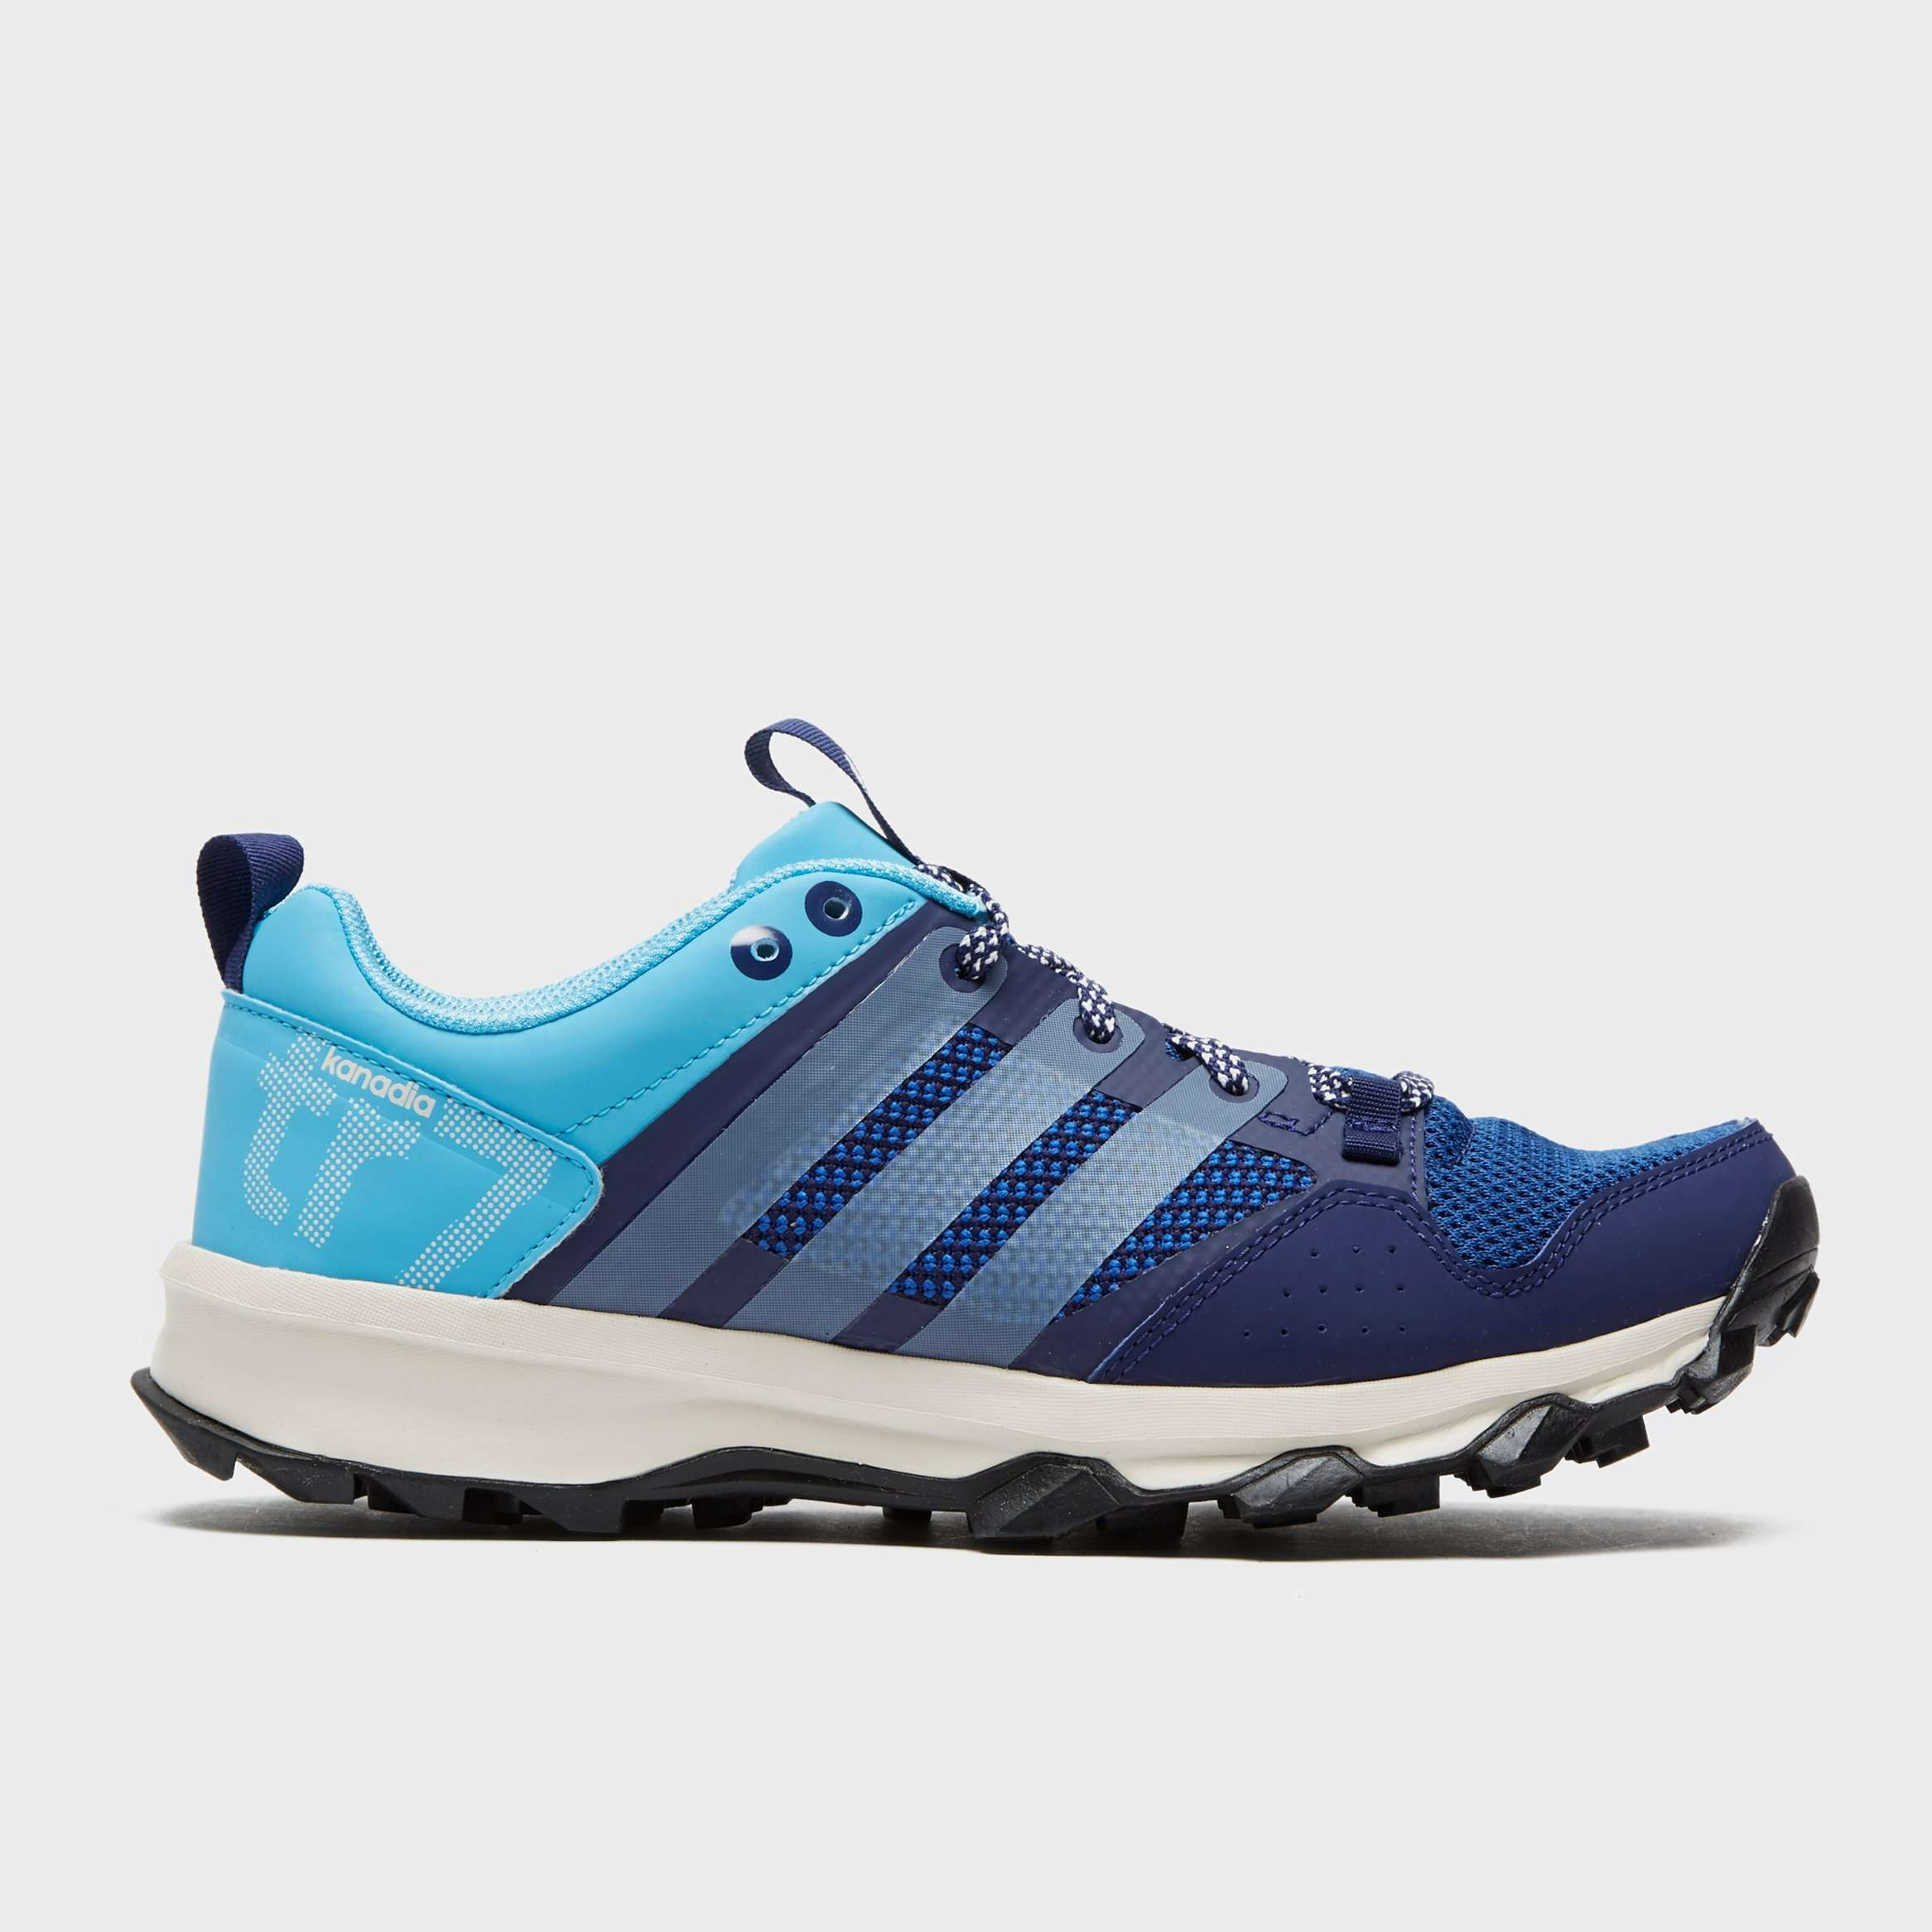 ADIDAS Women's Kanadia 7 Trail Shoe